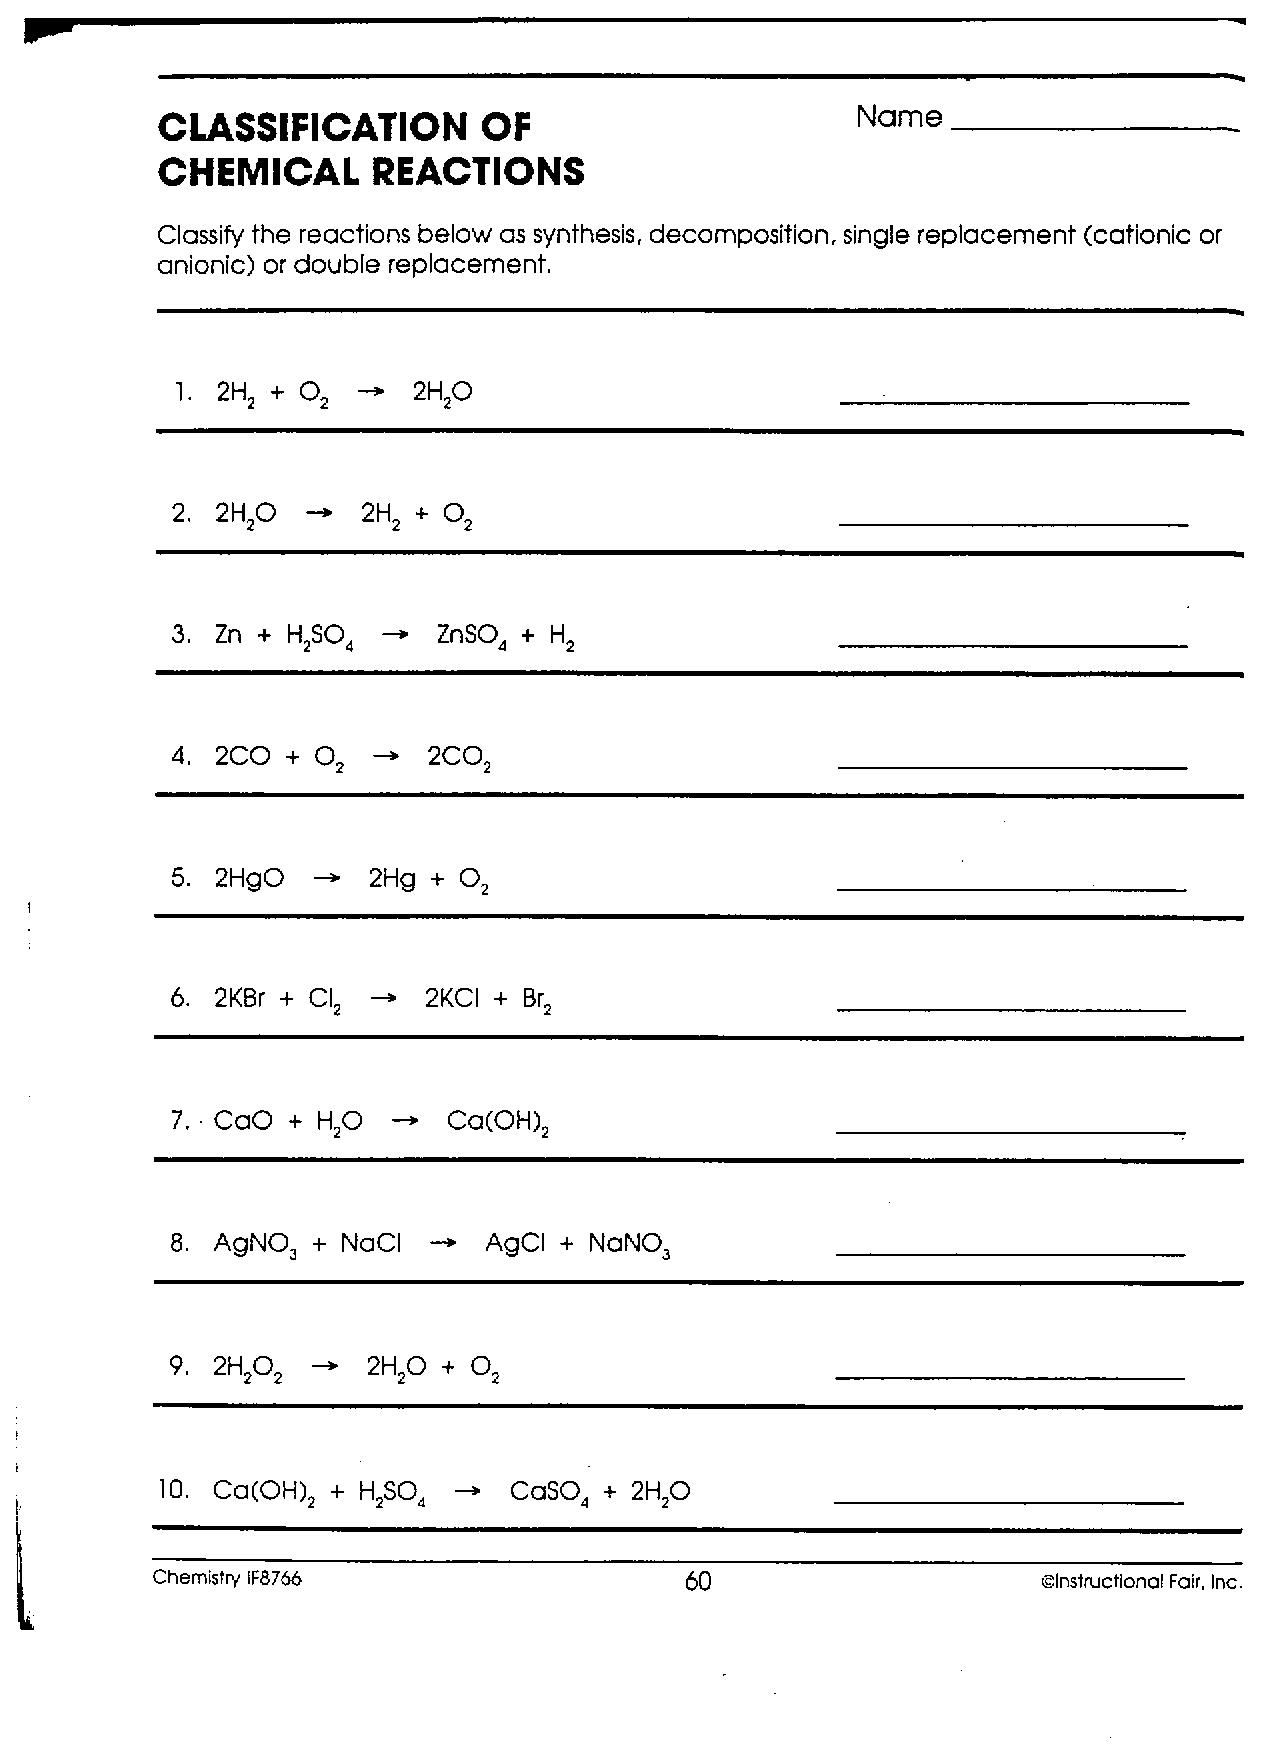 Worksheets Classifying Reactions Worksheet chemistry ia mr phelps big rapids hs download file